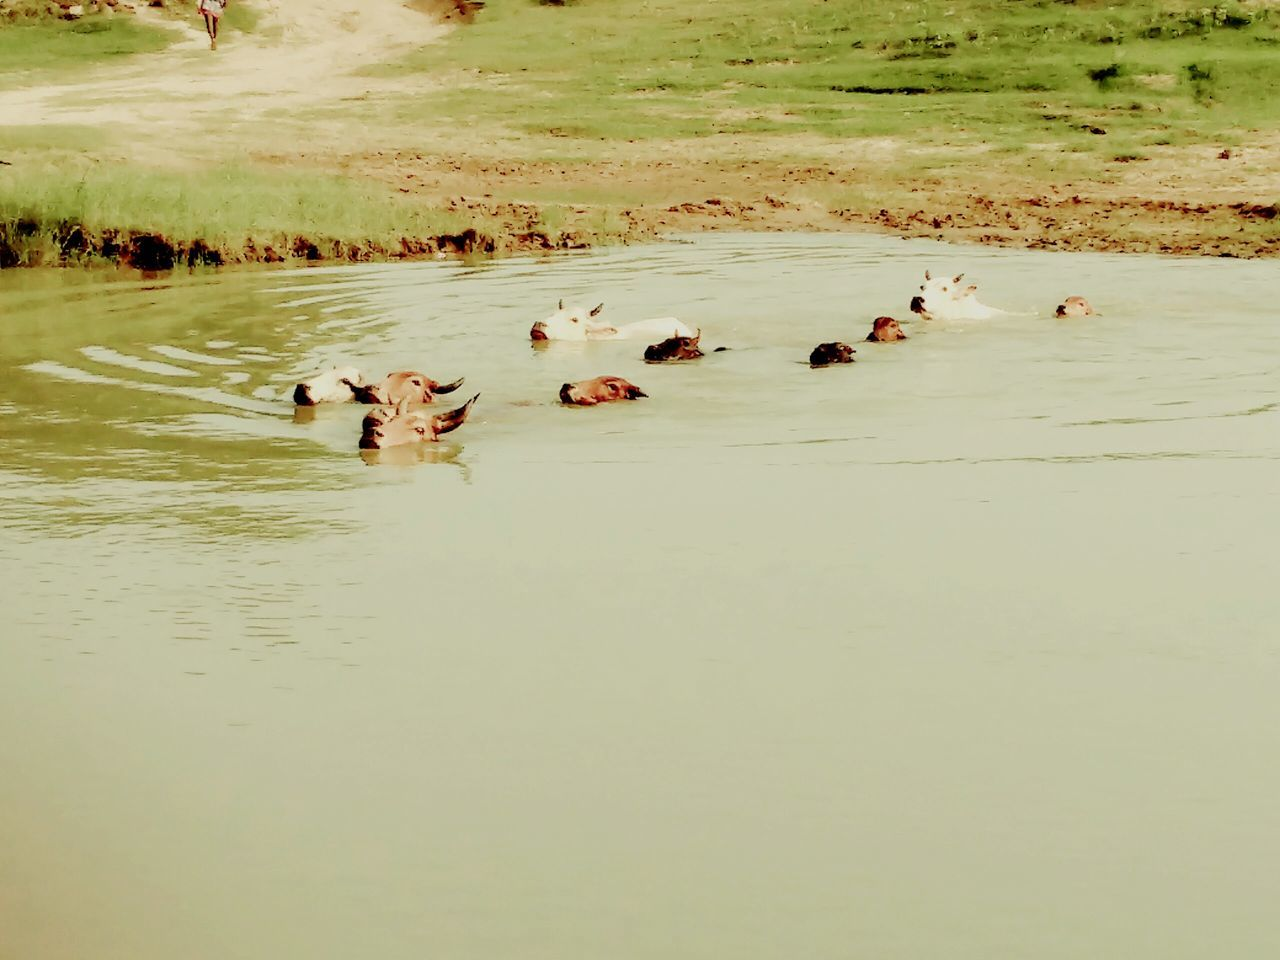 Pond Cows Cows In Water Only Head Visible Perfect Timing In A Line Animal Photography Natute_collection EyeEm Gallery Check This Out